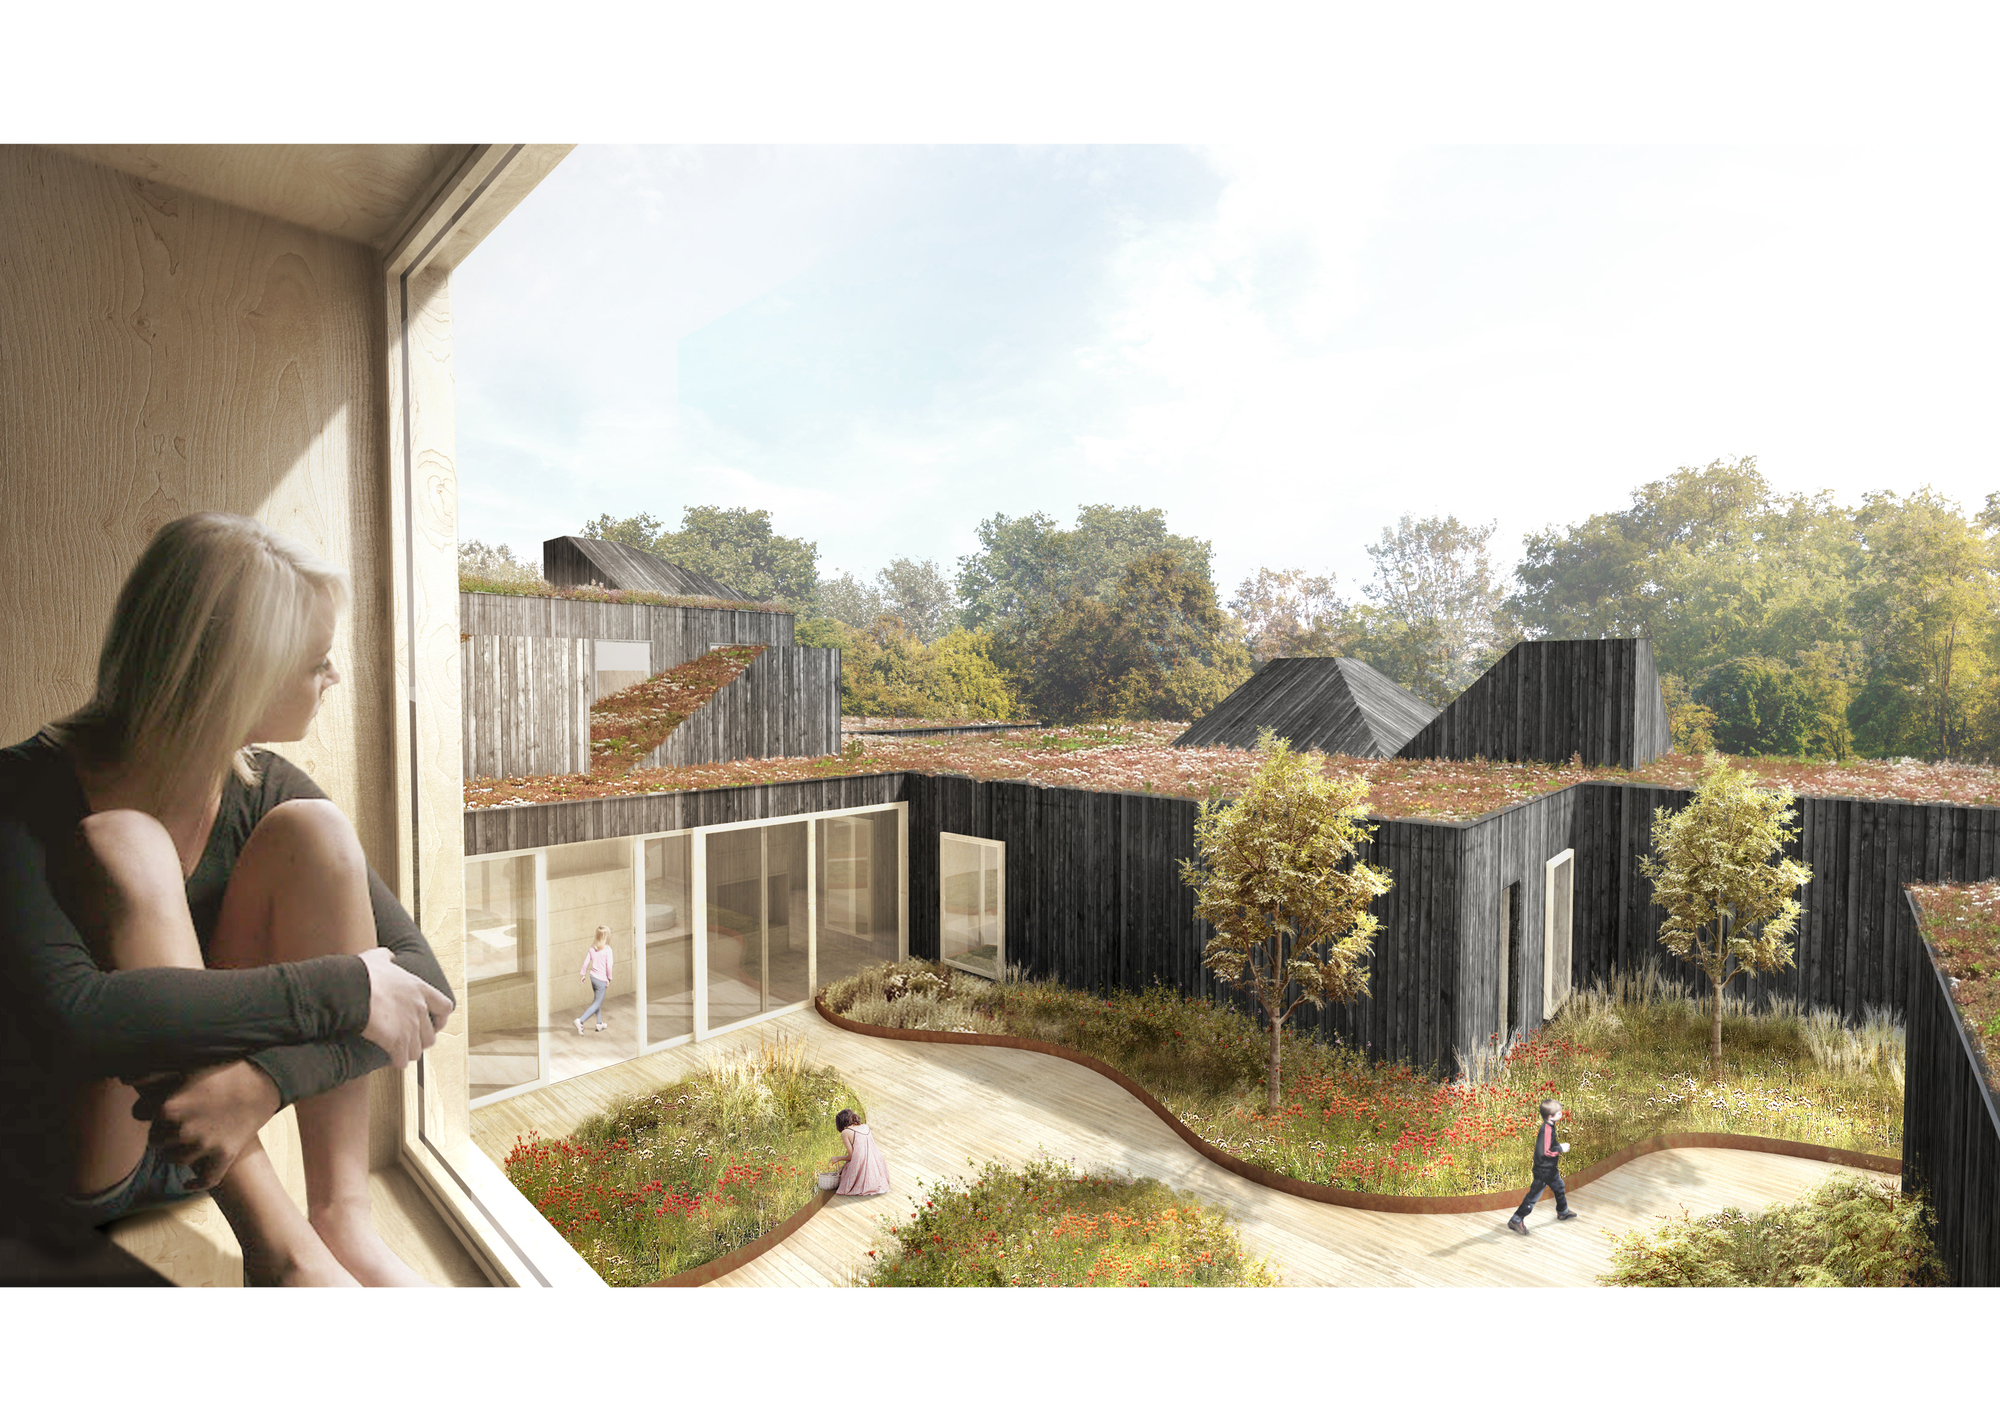 Gallery Of Creo Arkitekter And Jaja To Design Home For